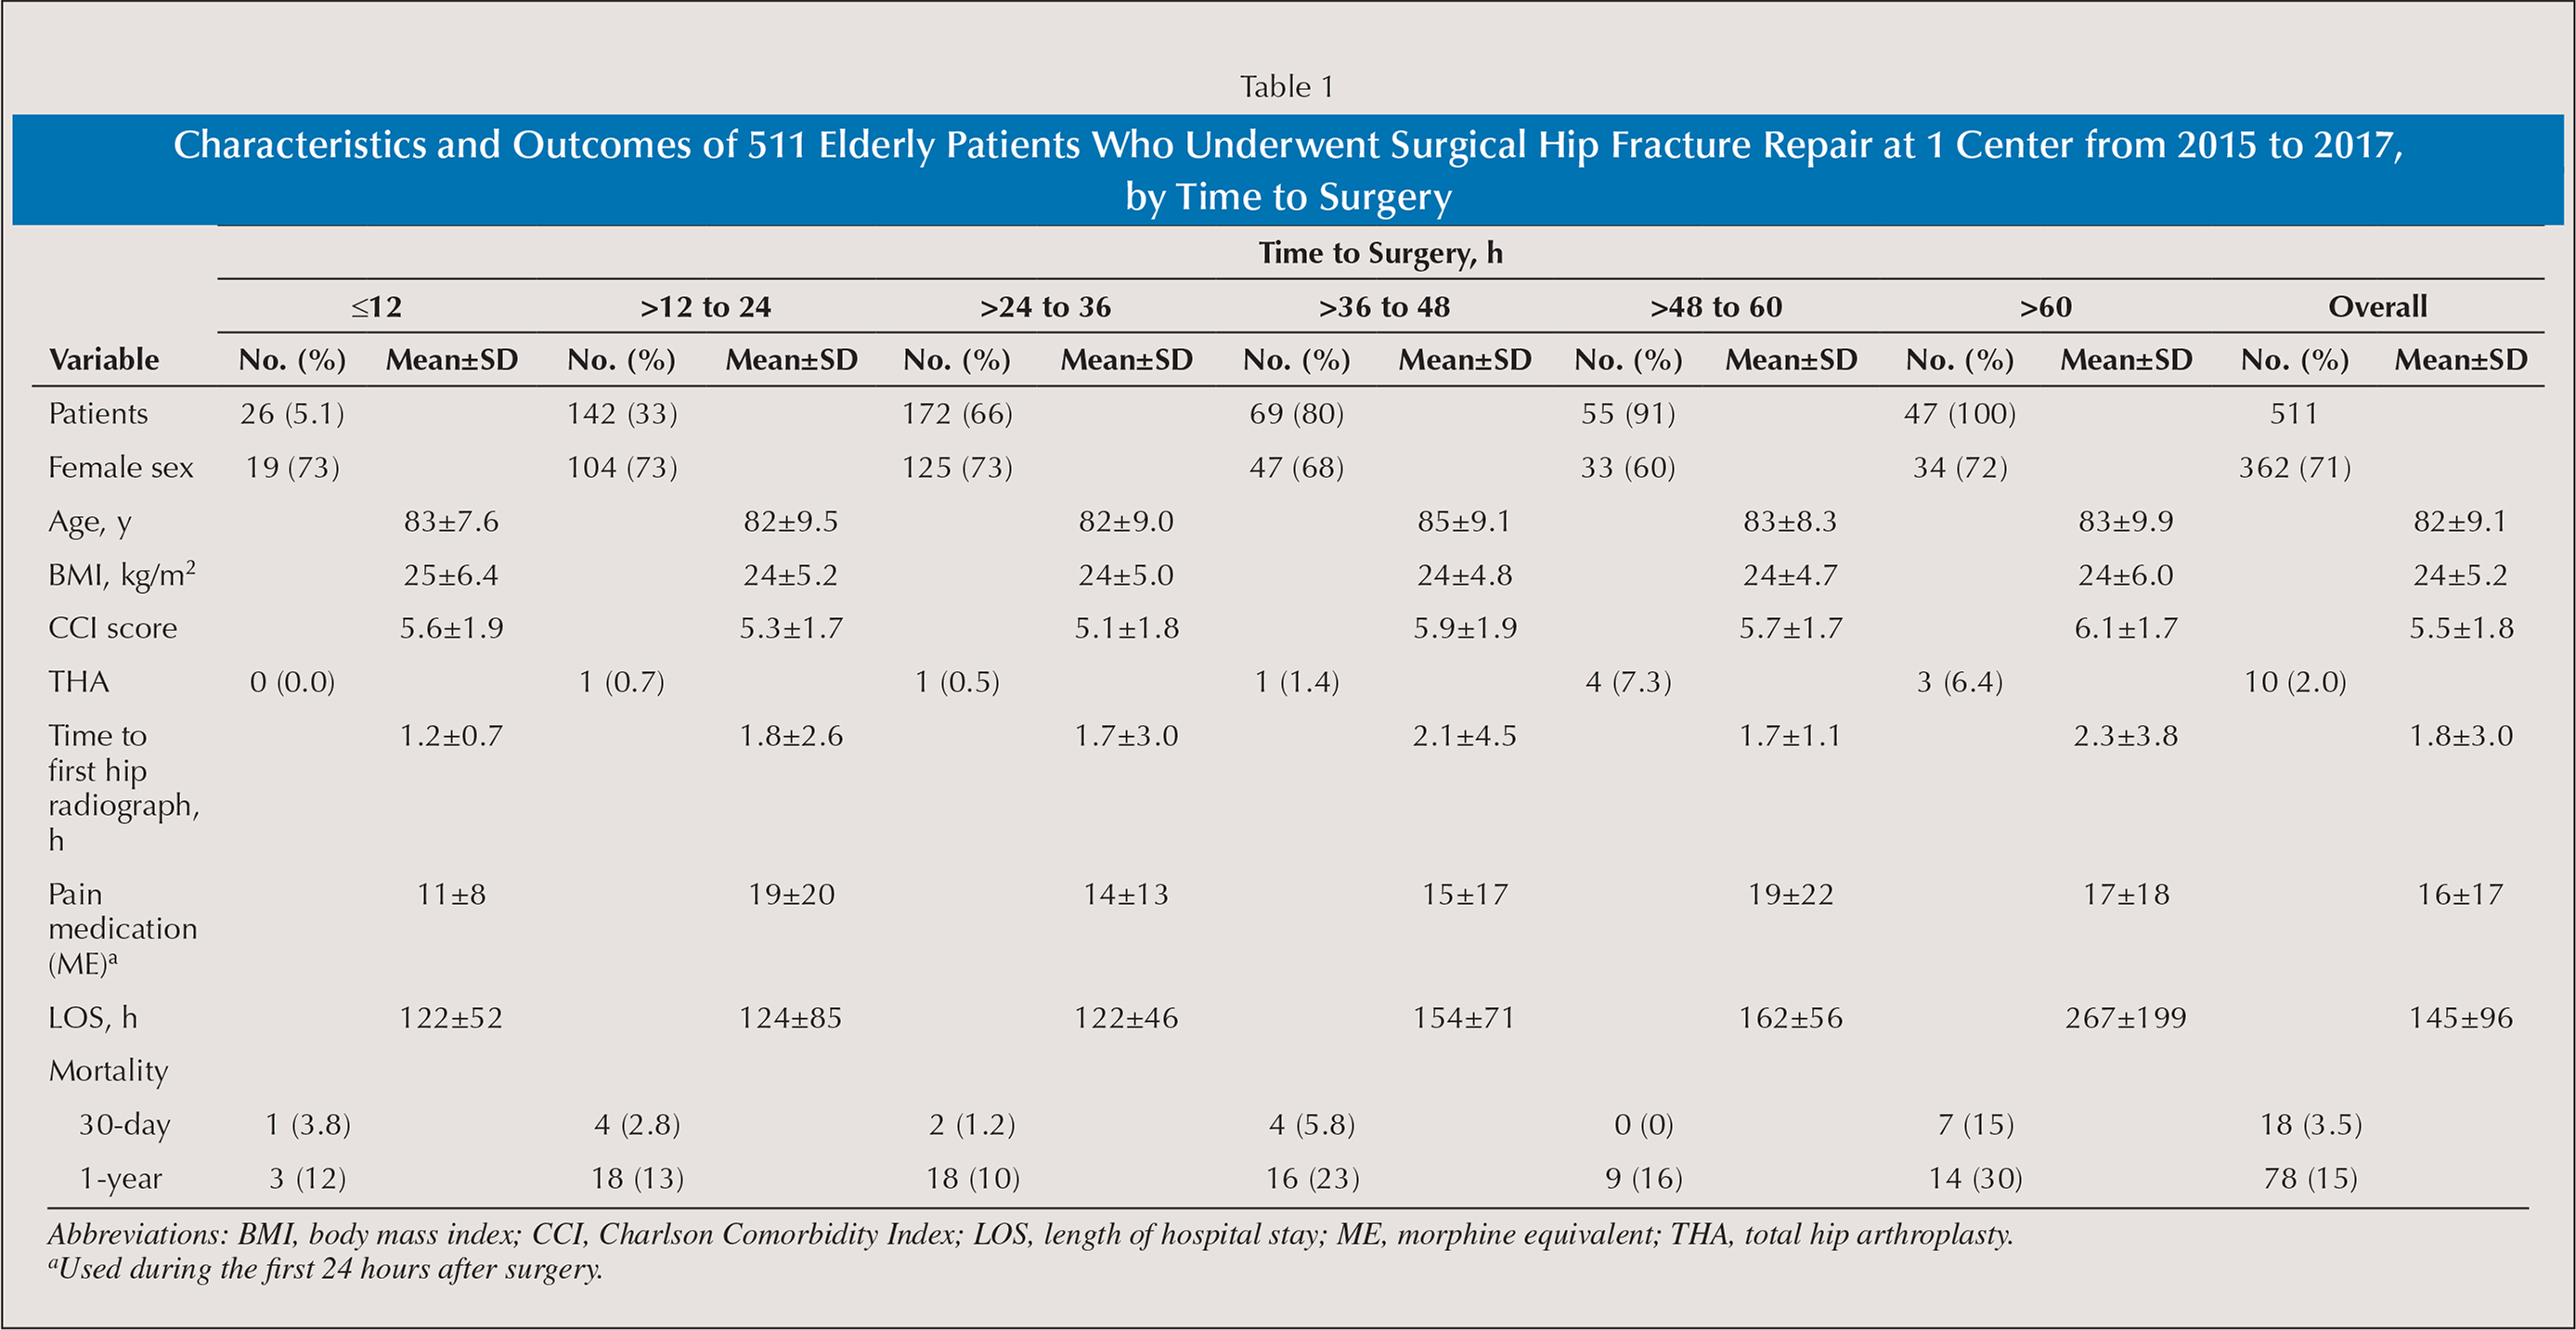 Characteristics and Outcomes of 511 Elderly Patients Who Underwent Surgical Hip Fracture Repair at 1 Center from 2015 to 2017, by Time to Surgery